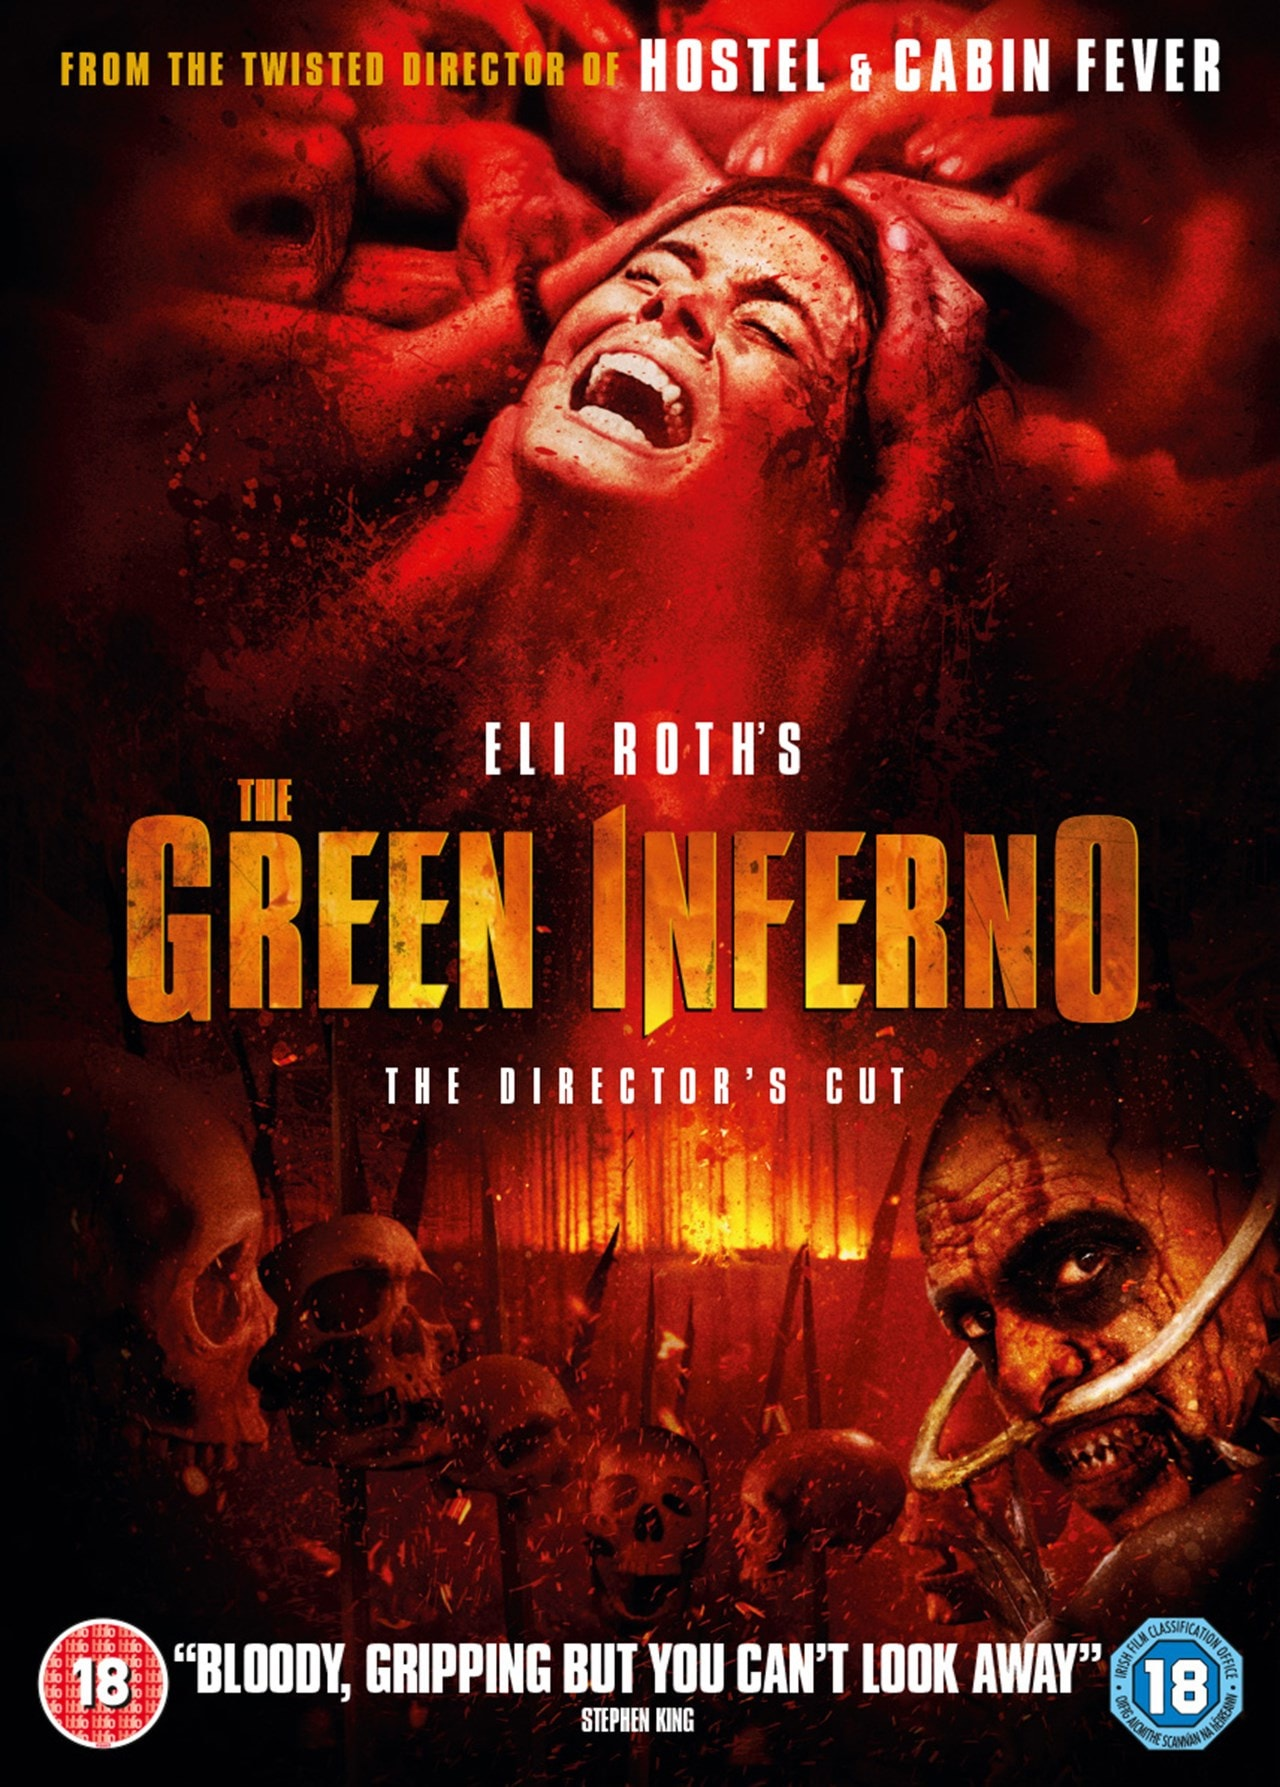 The Green Inferno - 1